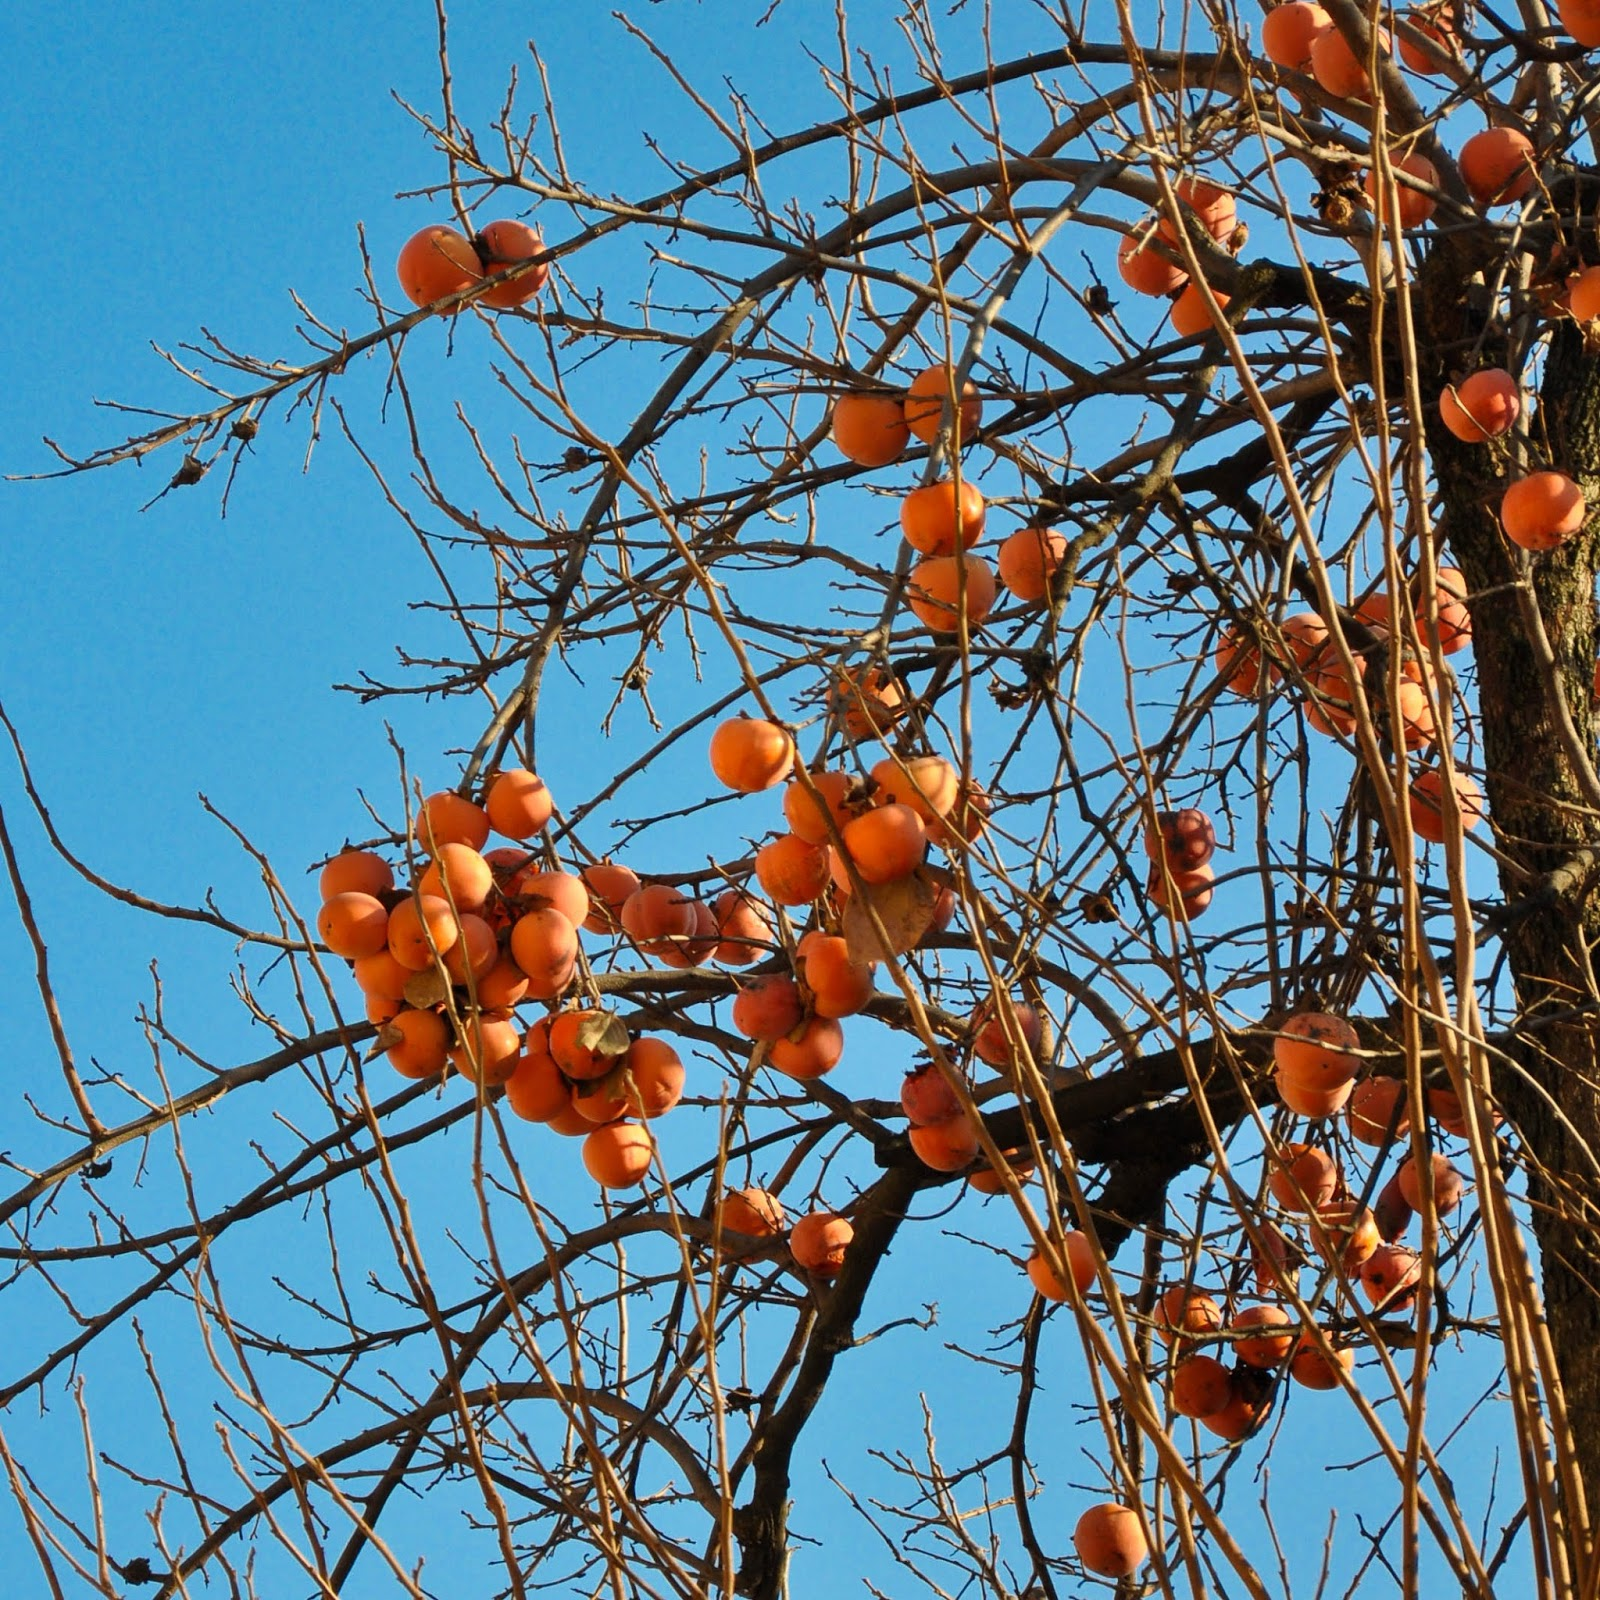 Persimmon tree, Vicenza, Italy